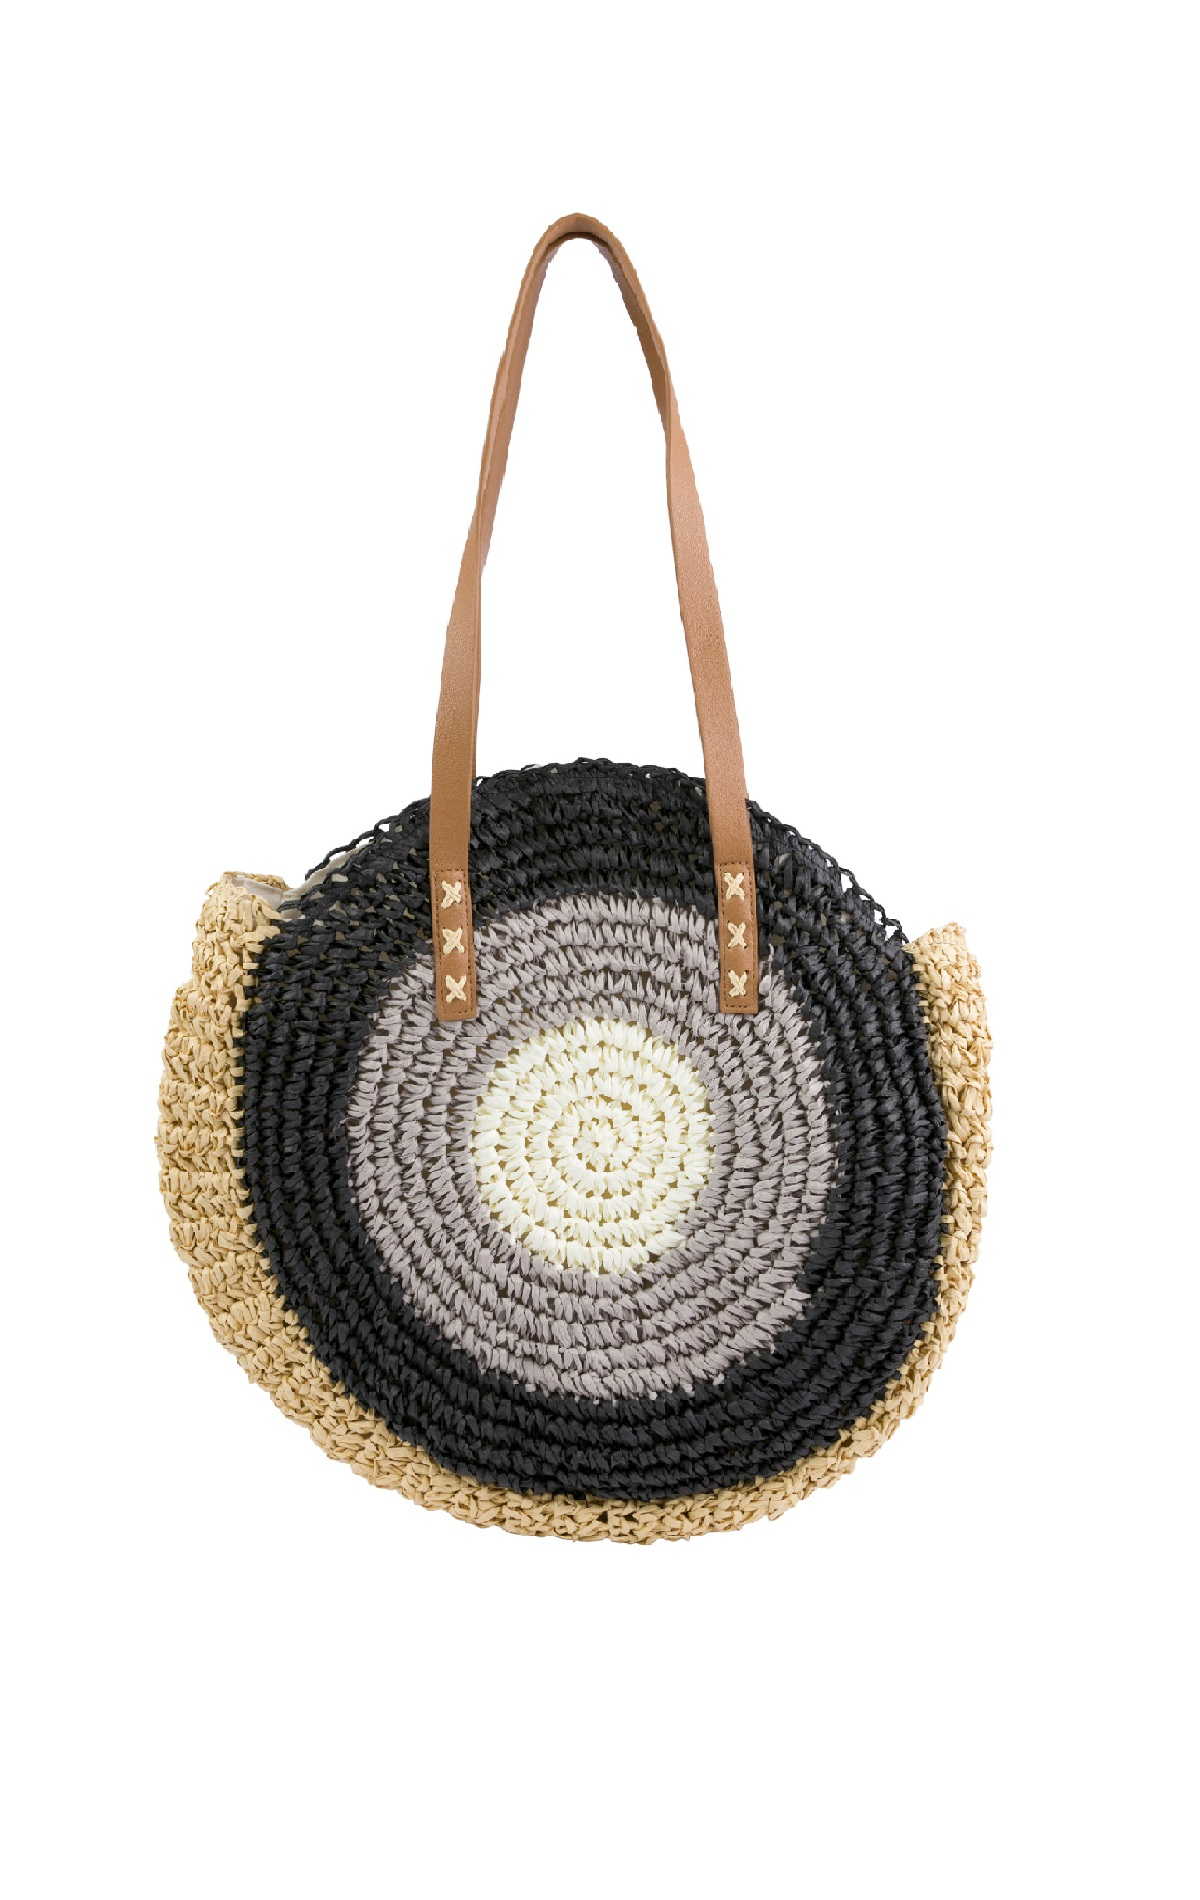 Rounded raffia grey bag for woman Textura